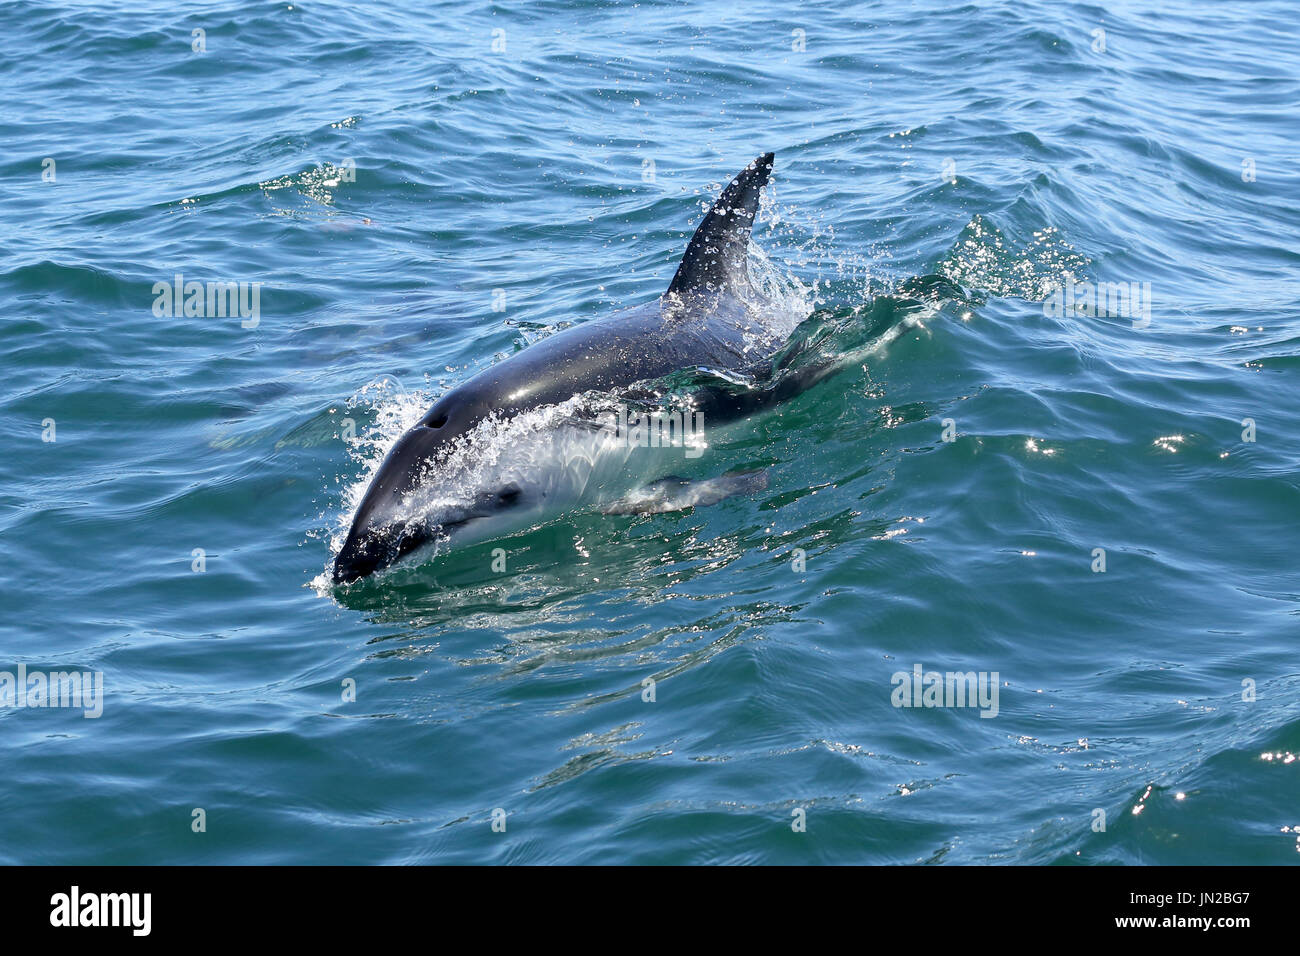 African Dusky Dolphin (Lagenorhynchus obscurus) in waters off Namibia - Stock Image